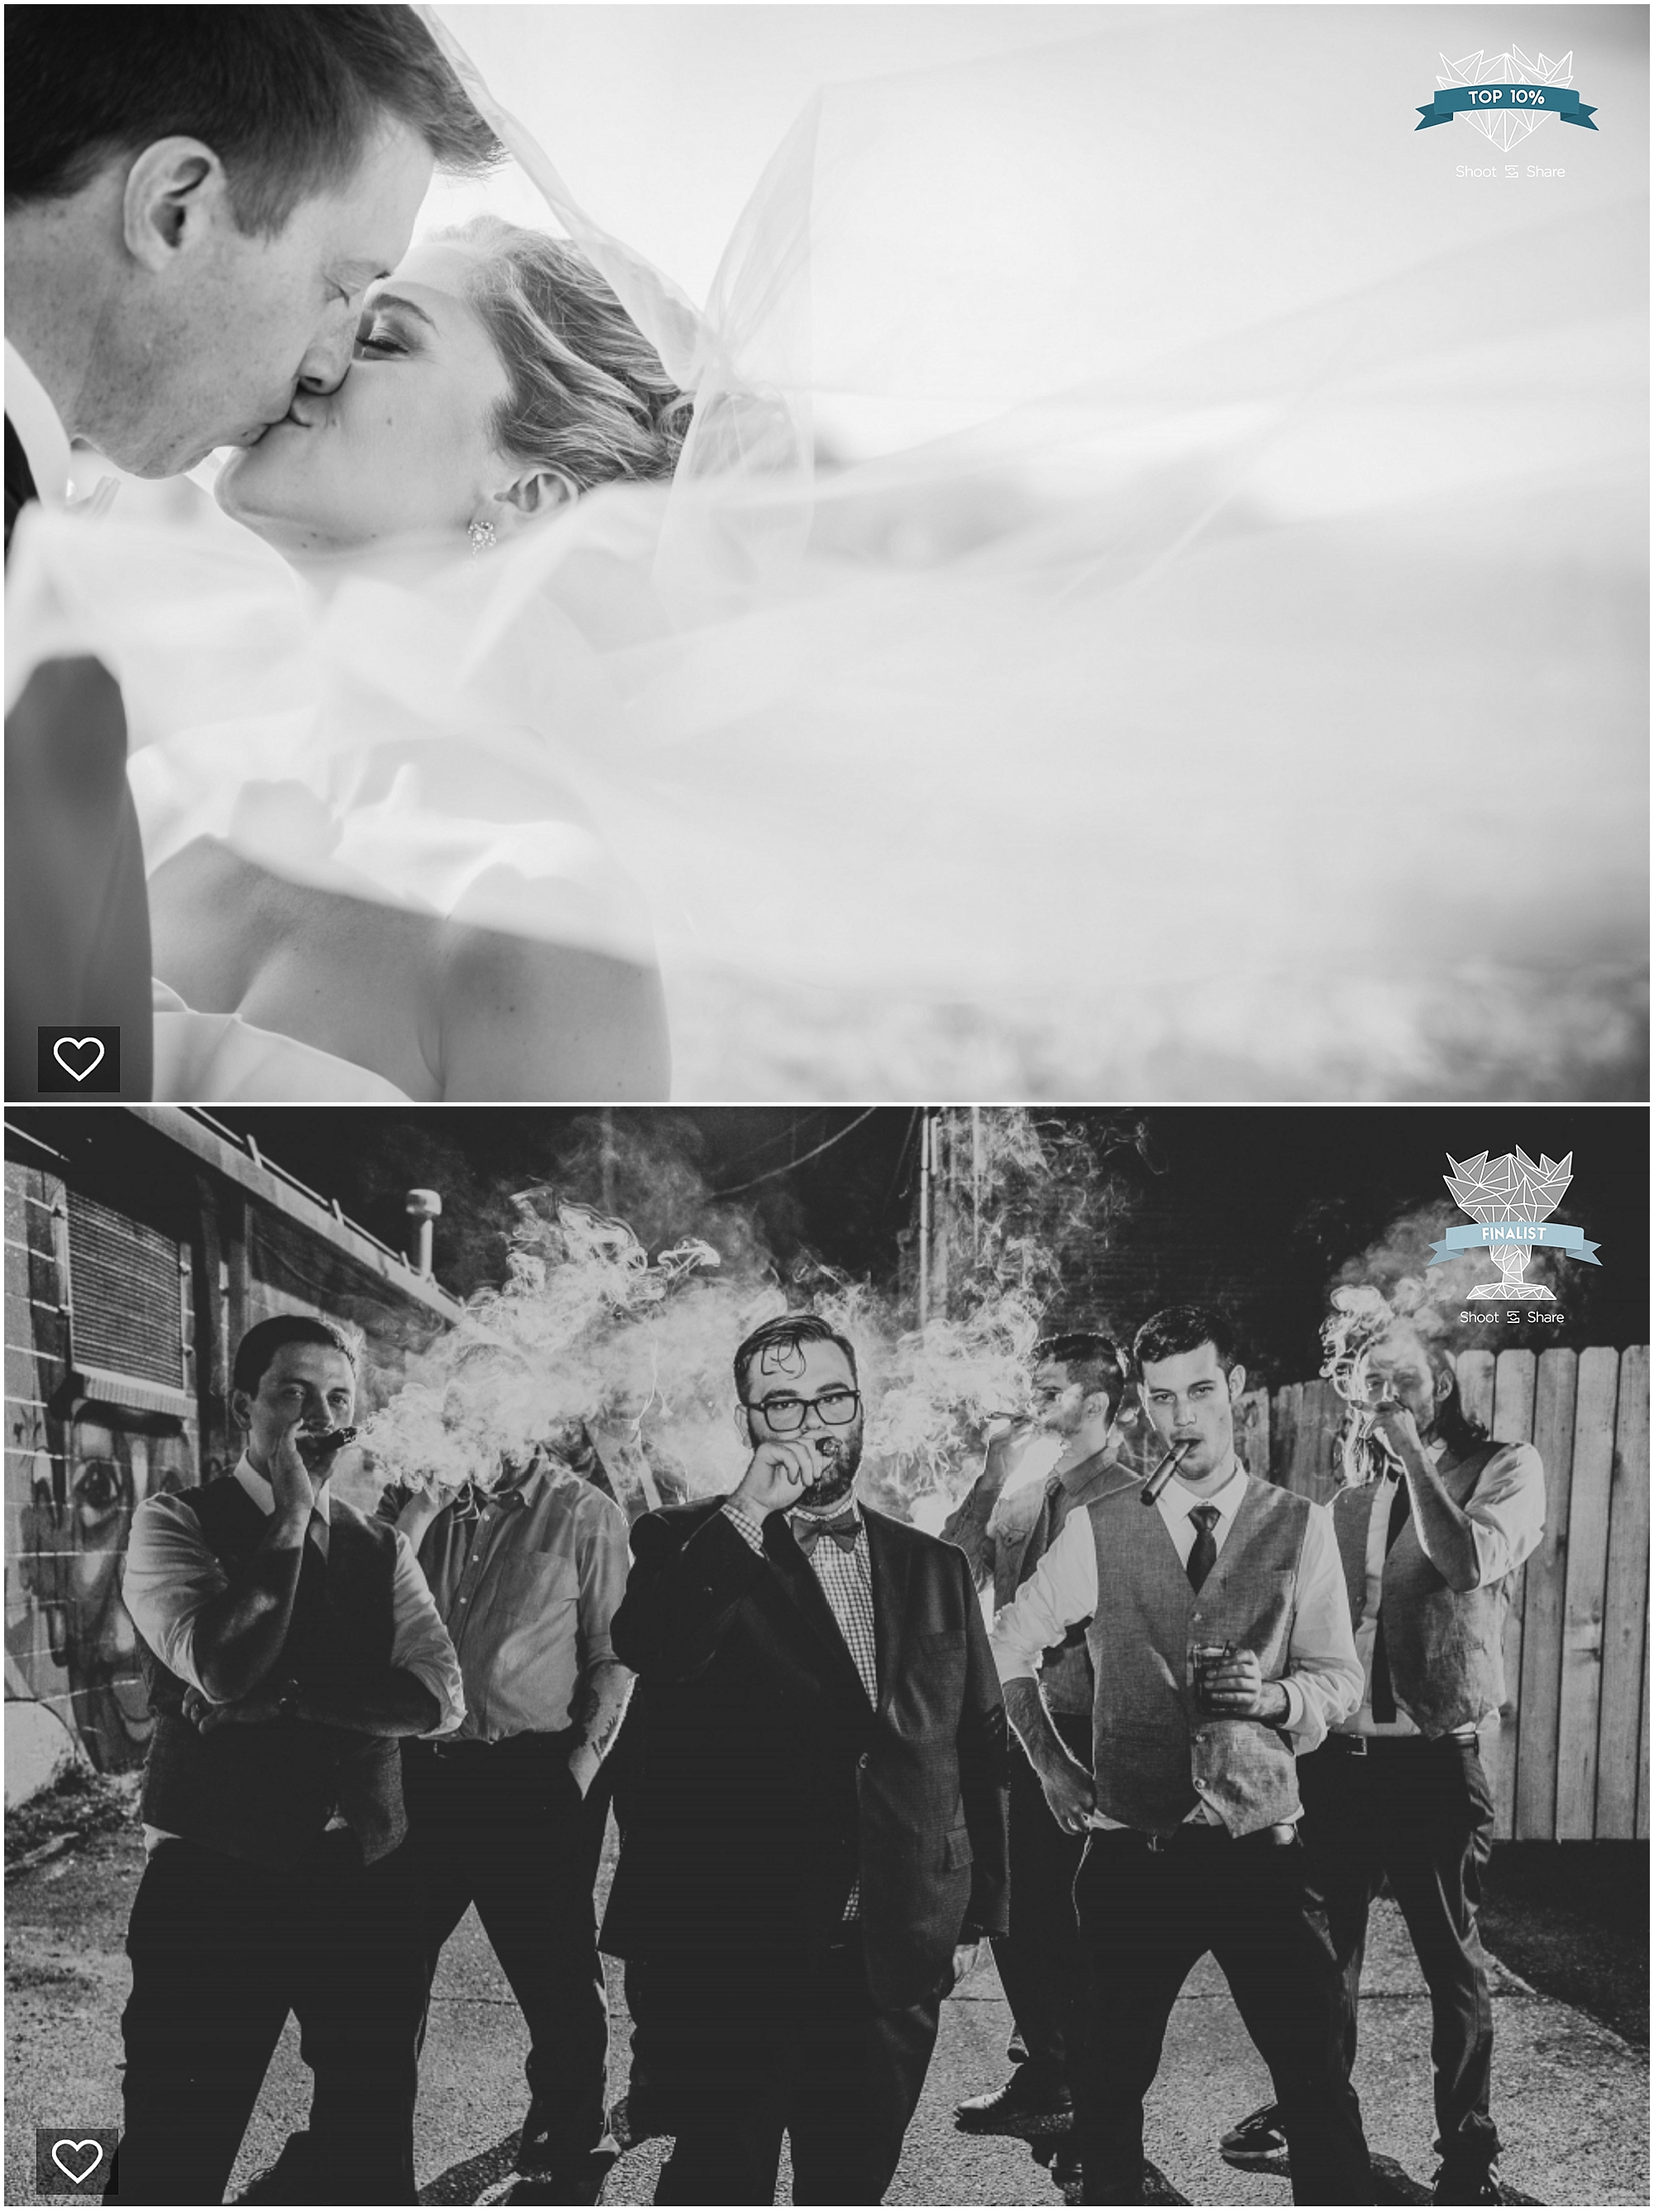 shoot and share, colorado wedding pictures, denver wedding pictures, colorado wedding photographer, groom smoking cigars, kissing couple, black and white wedding pictures